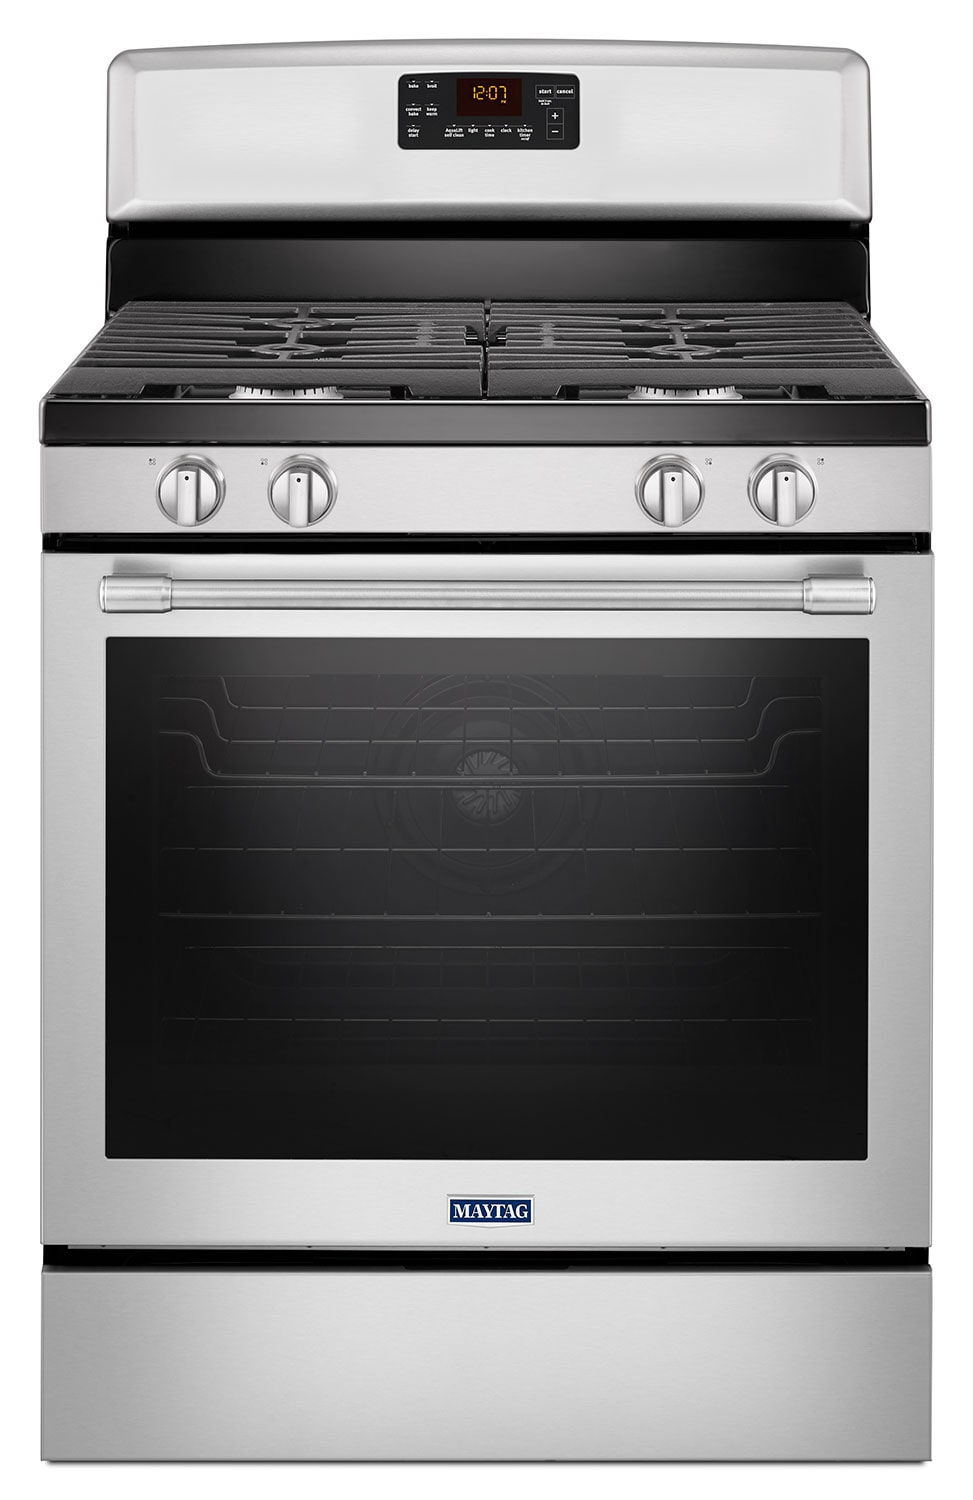 Maytag Stainless Steel Freestanding Gas Convection Range (5.8 Cu. Ft.) - MGR8650FZ